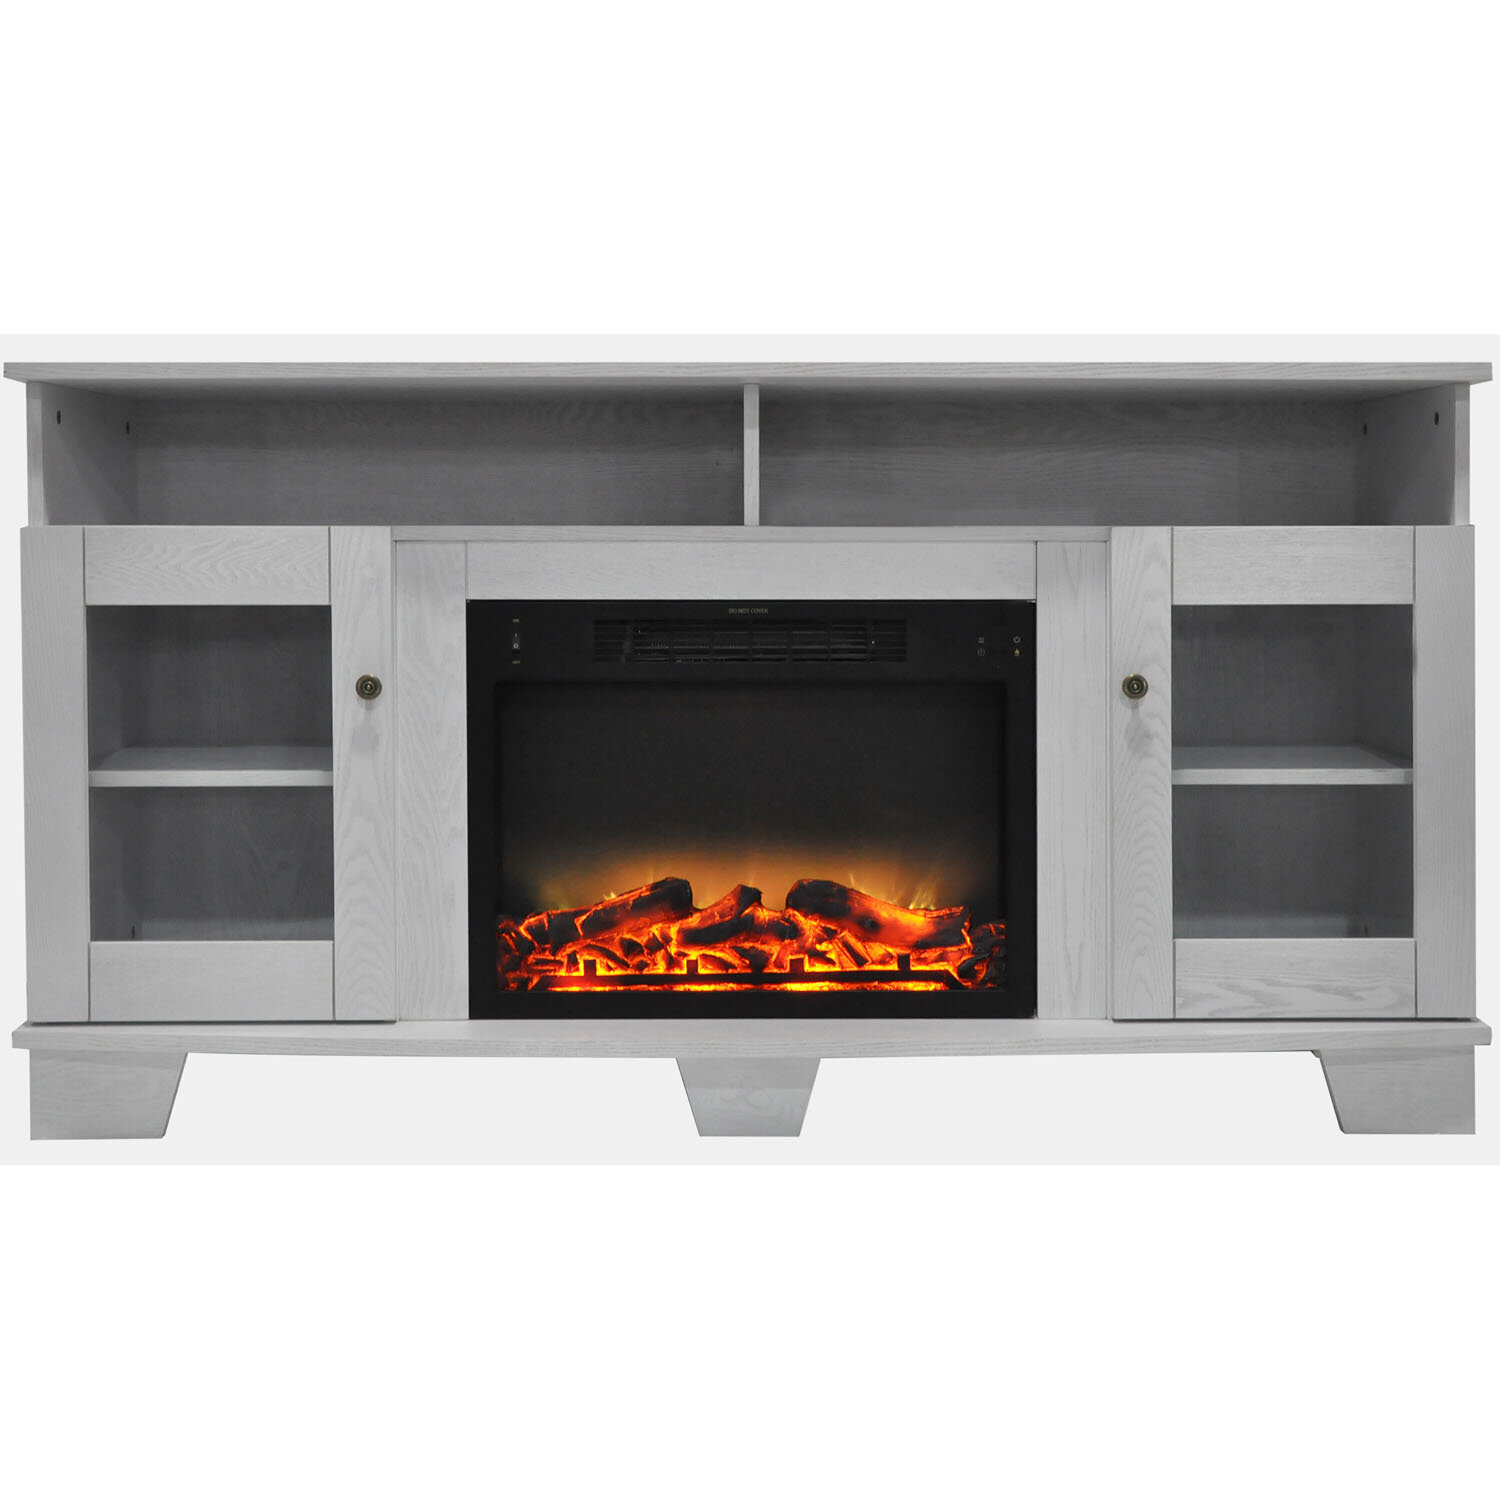 red barrel studio ackermanville modern electric fireplace tv stand reviews wayfair - Electric Fireplaces With Tv Stands